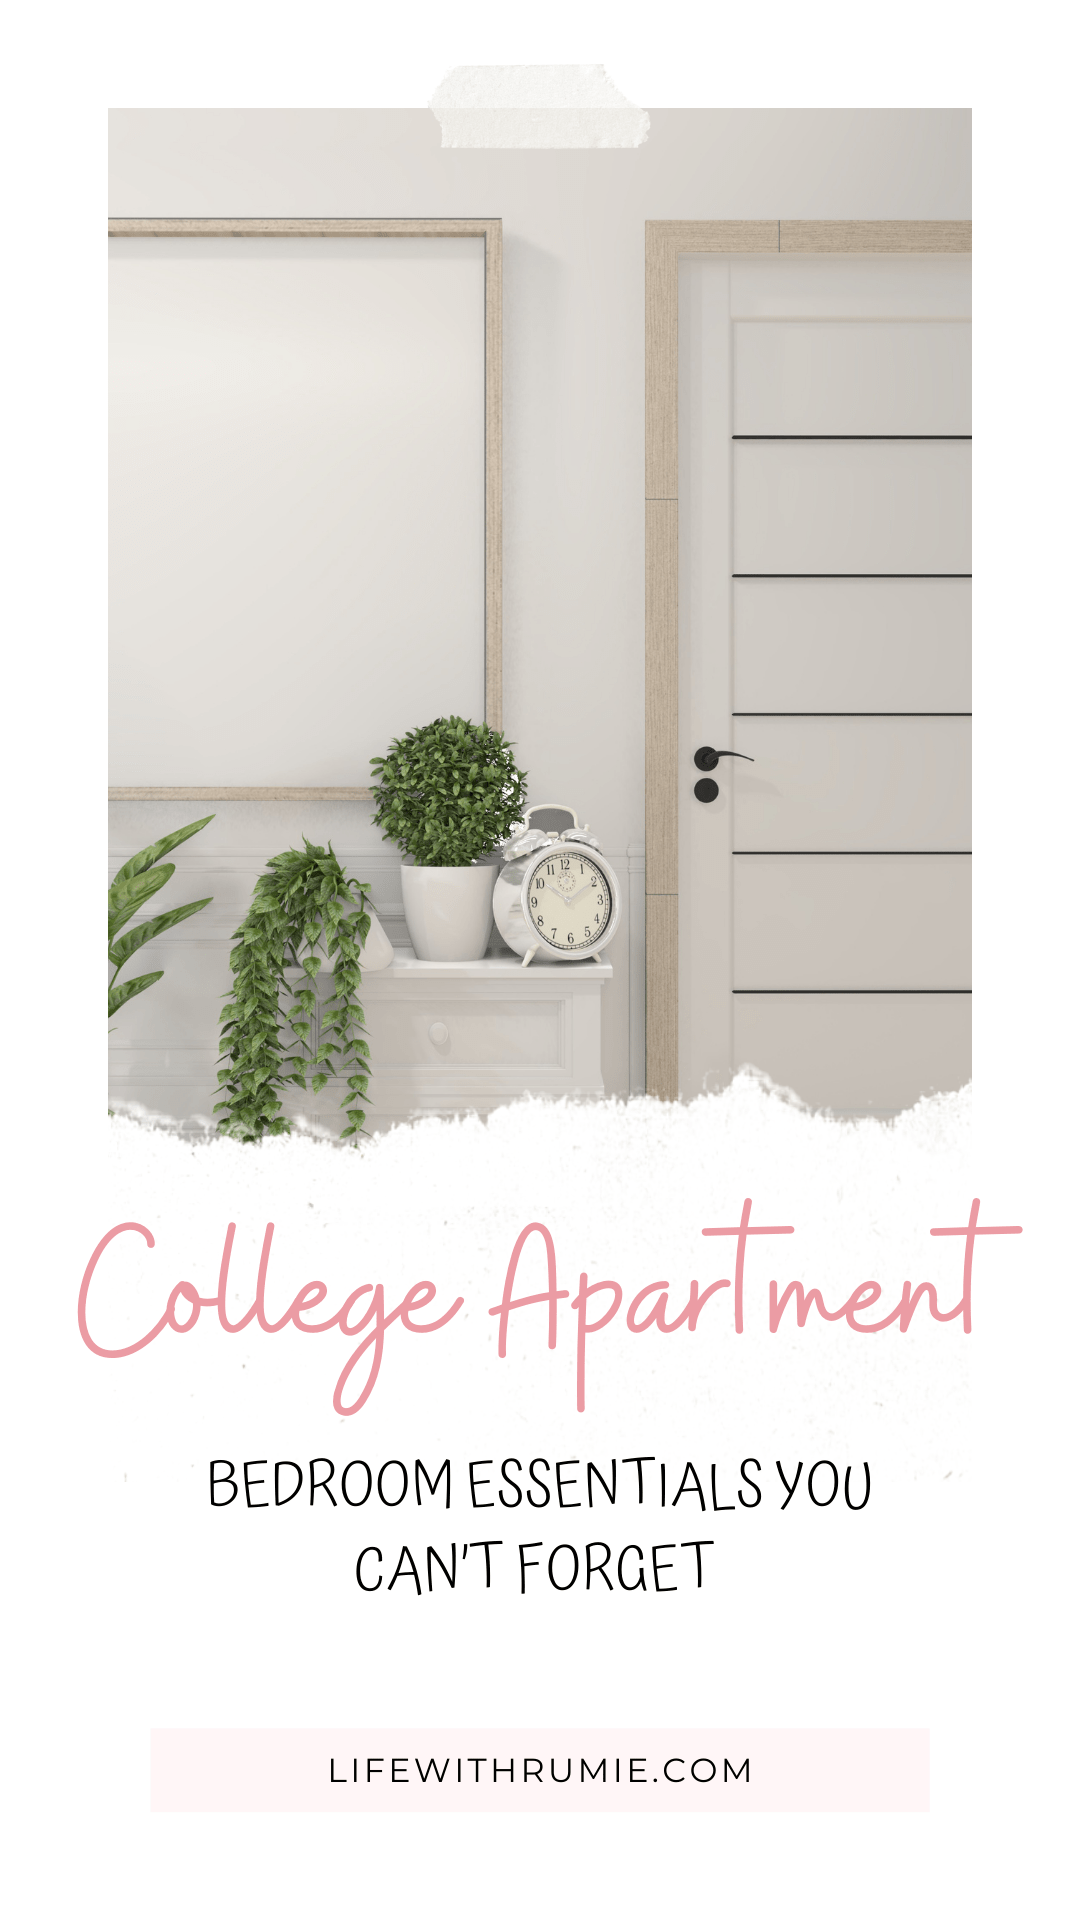 college apartment bedroom essentials you need